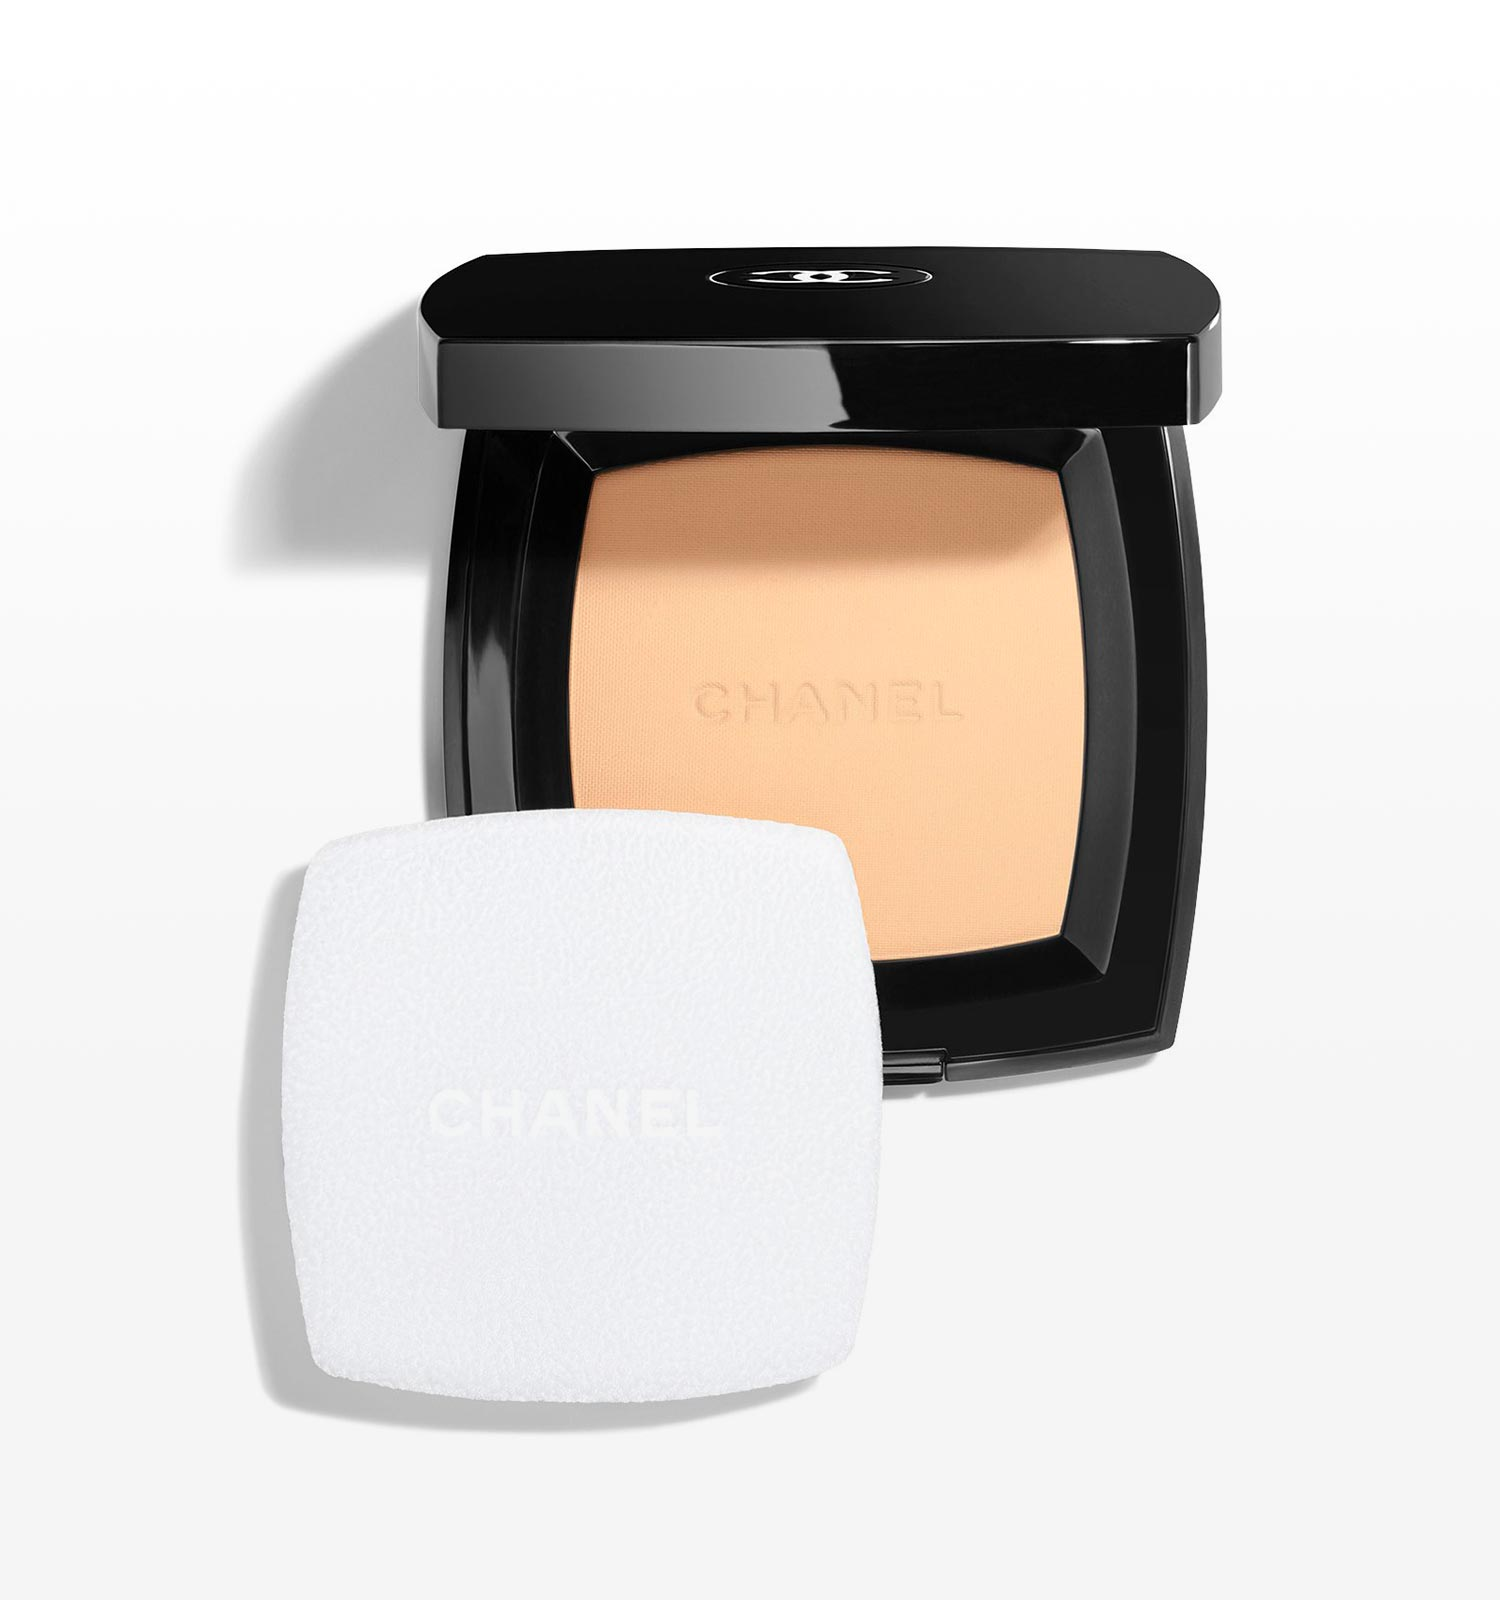 Makeup Powders, Pressed Powders - Complexion | CHANEL